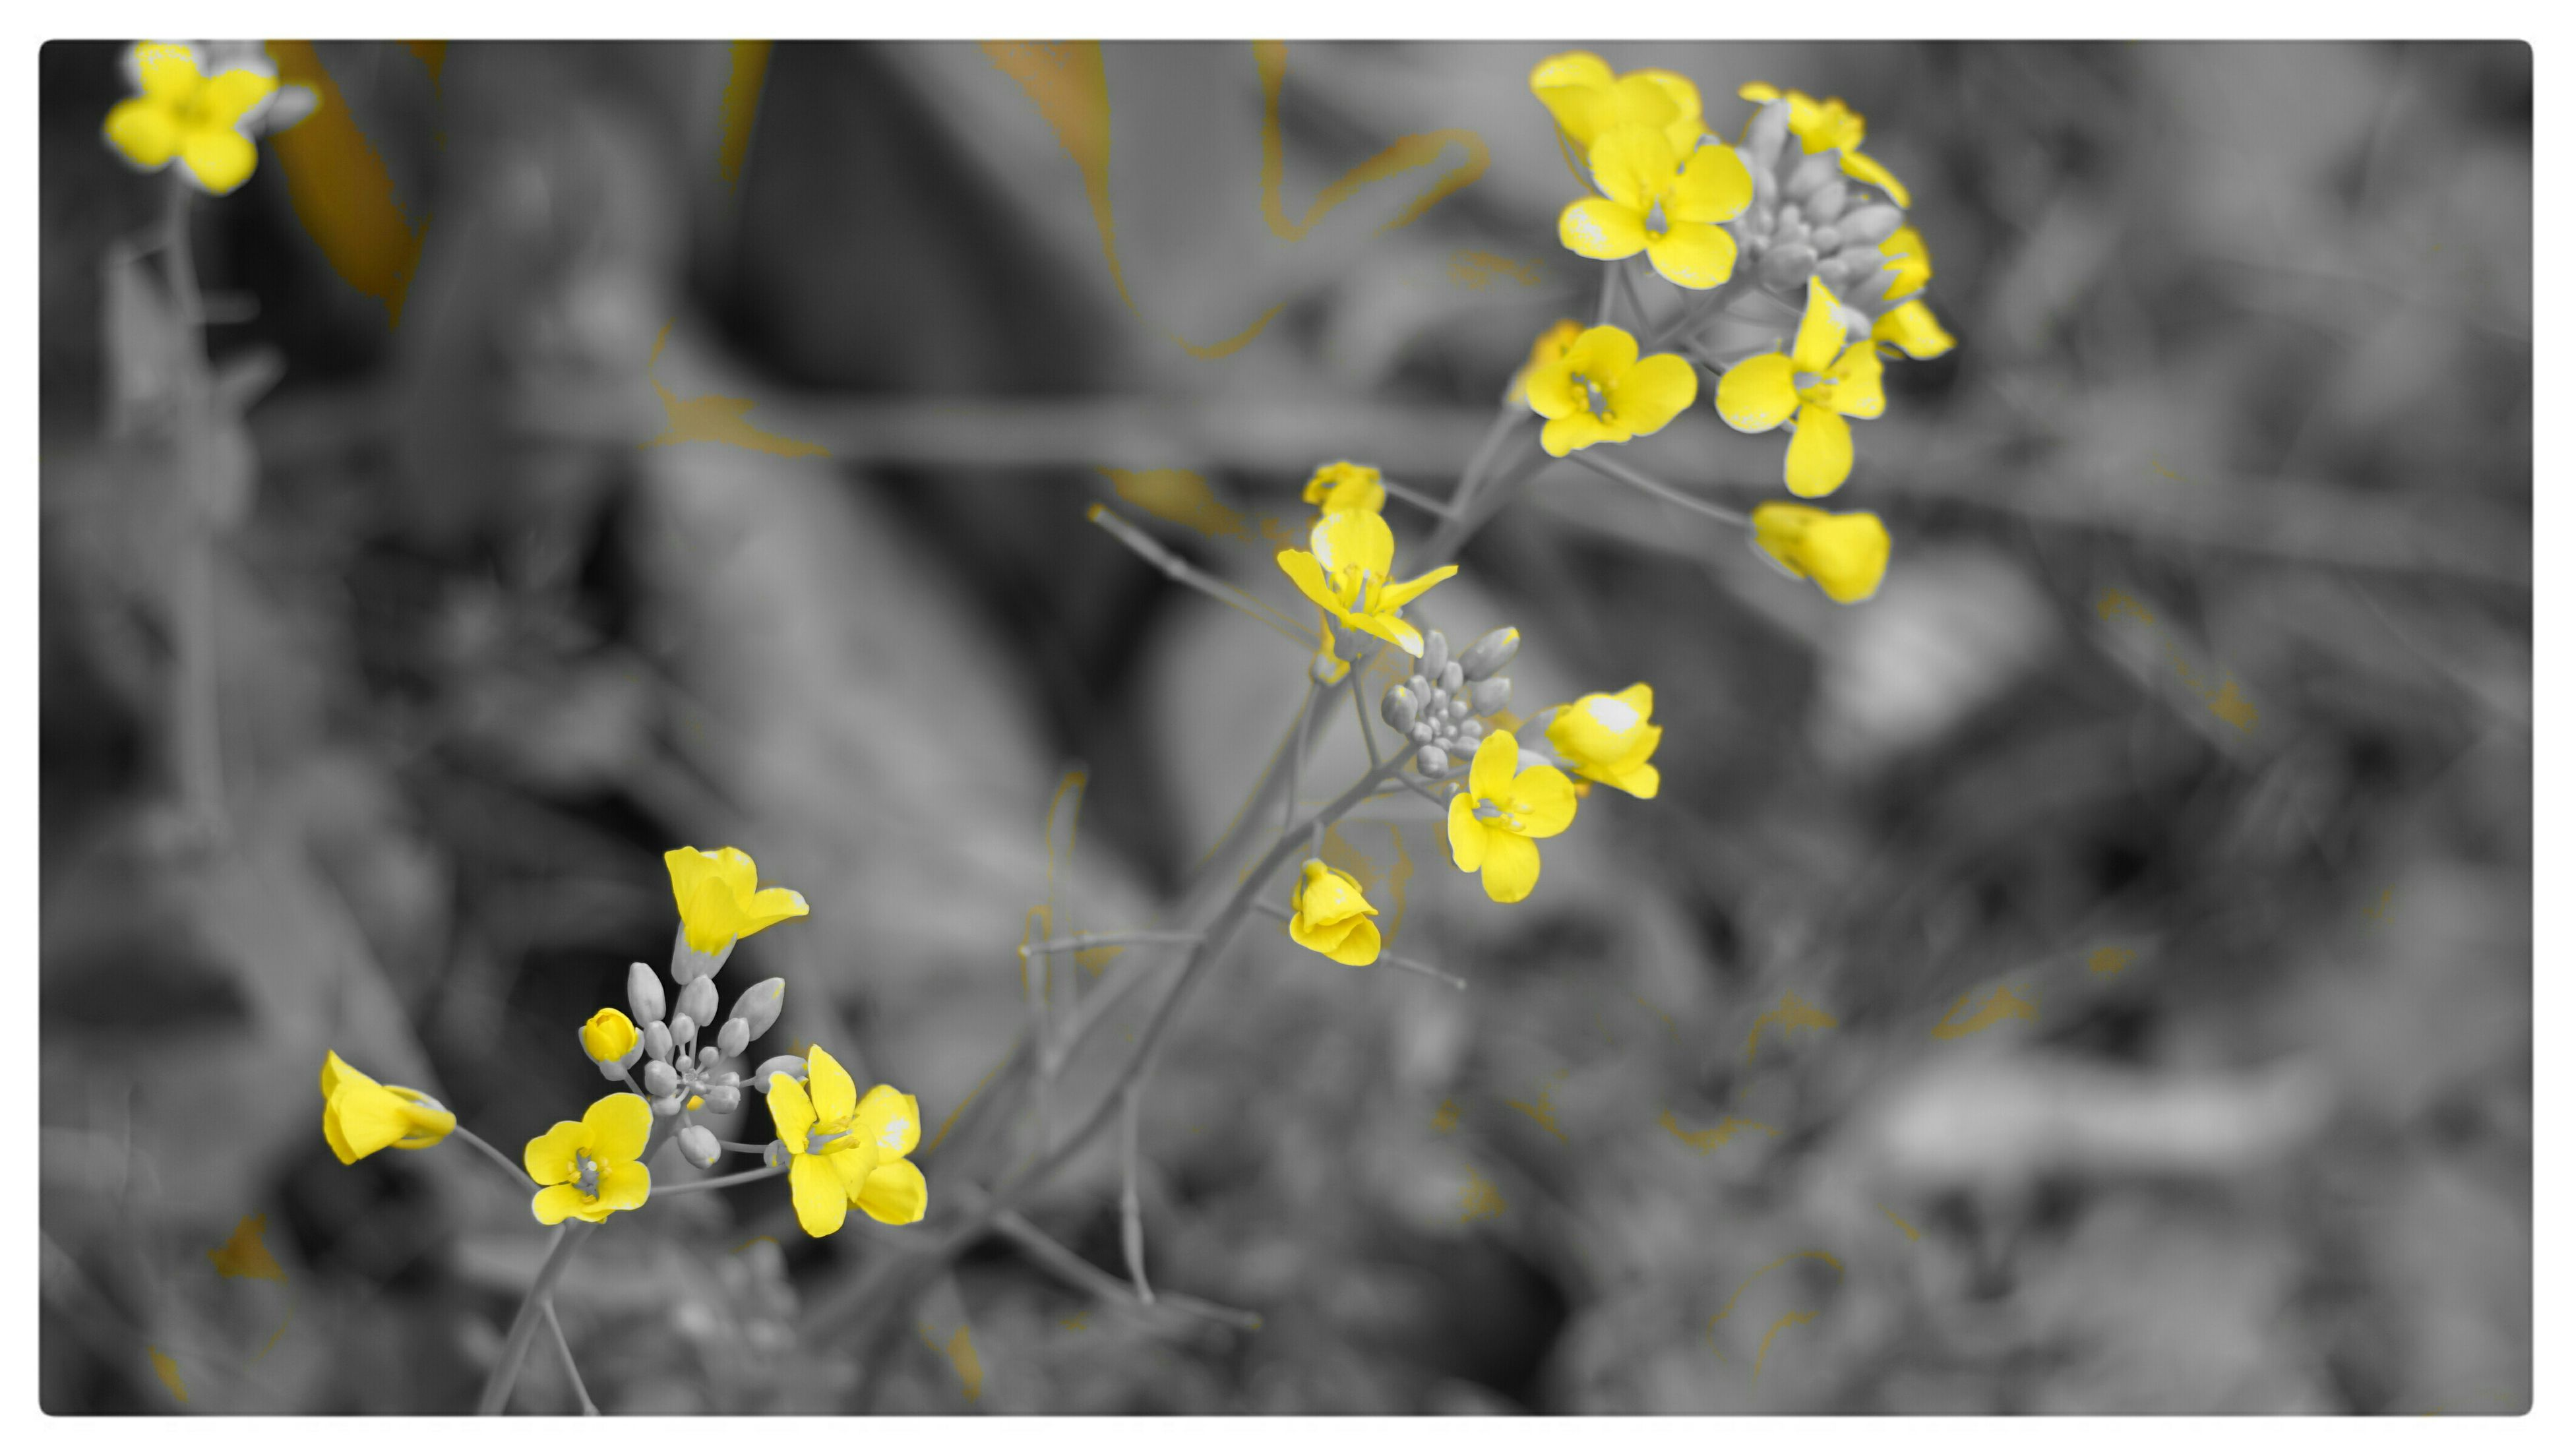 flower, yellow, freshness, fragility, growth, focus on foreground, petal, transfer print, beauty in nature, plant, nature, blooming, flower head, close-up, stem, wildflower, selective focus, field, in bloom, auto post production filter